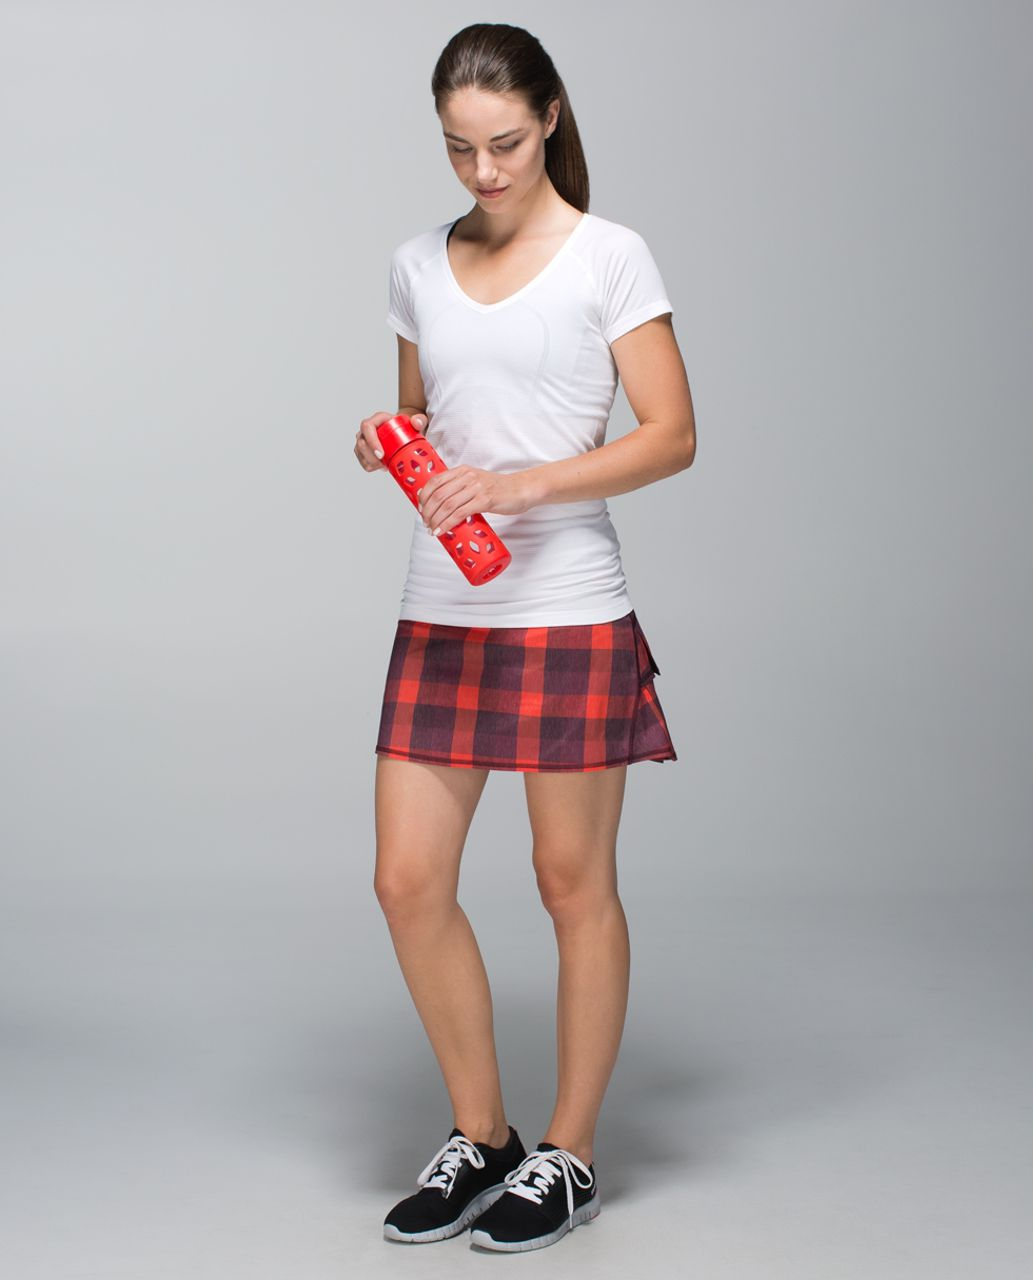 Lululemon Run:  Pace Setter Skirt *2-way Stretch (Tall) - Yama Check Heathered Flaming Tomato / Bordeaux Drama